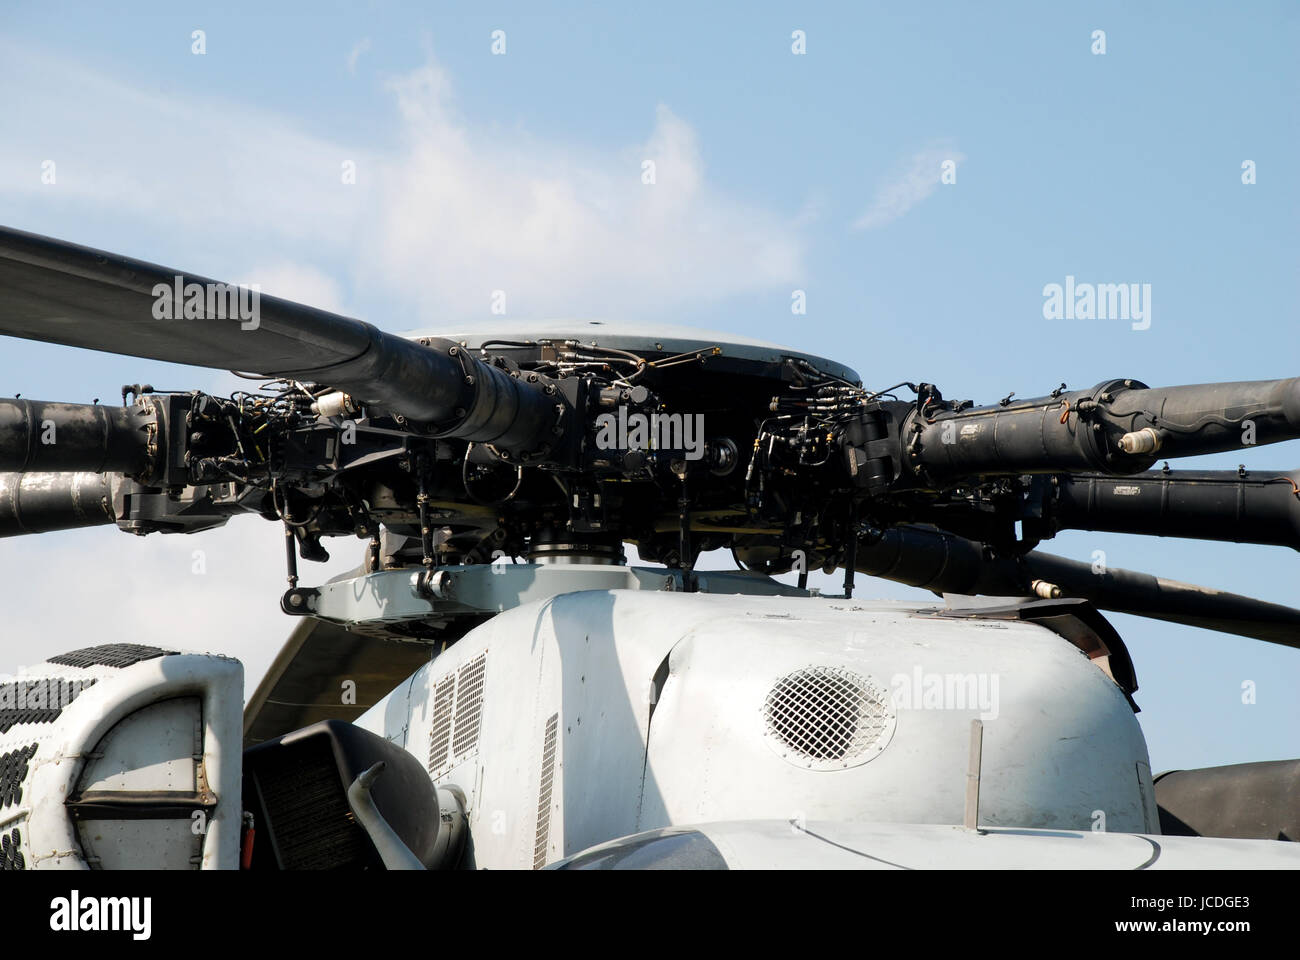 stock pictures of military helicopters and other rotary wing - Stock Image